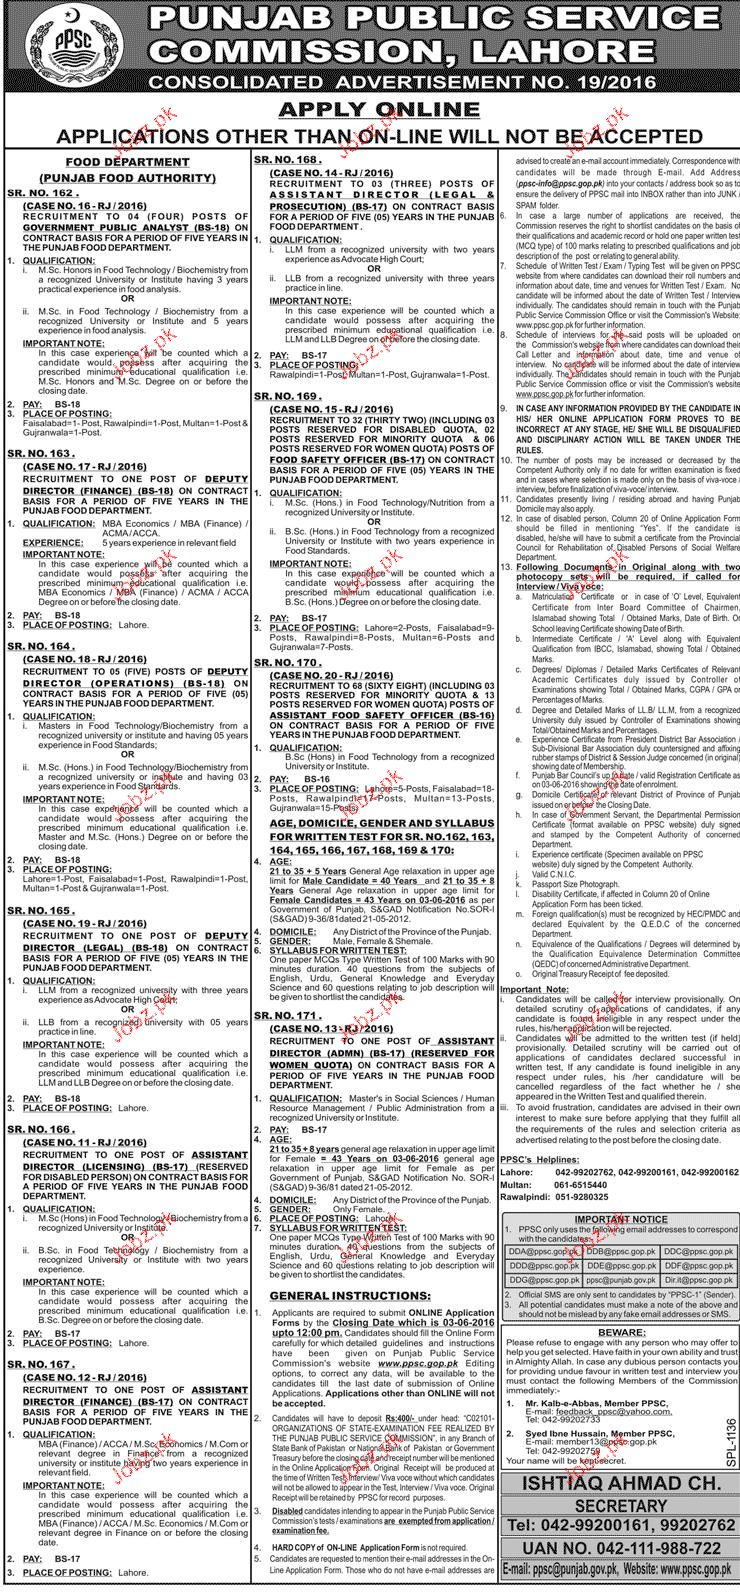 Assistant Director Legal, Food Safety Officers Job In PPSC